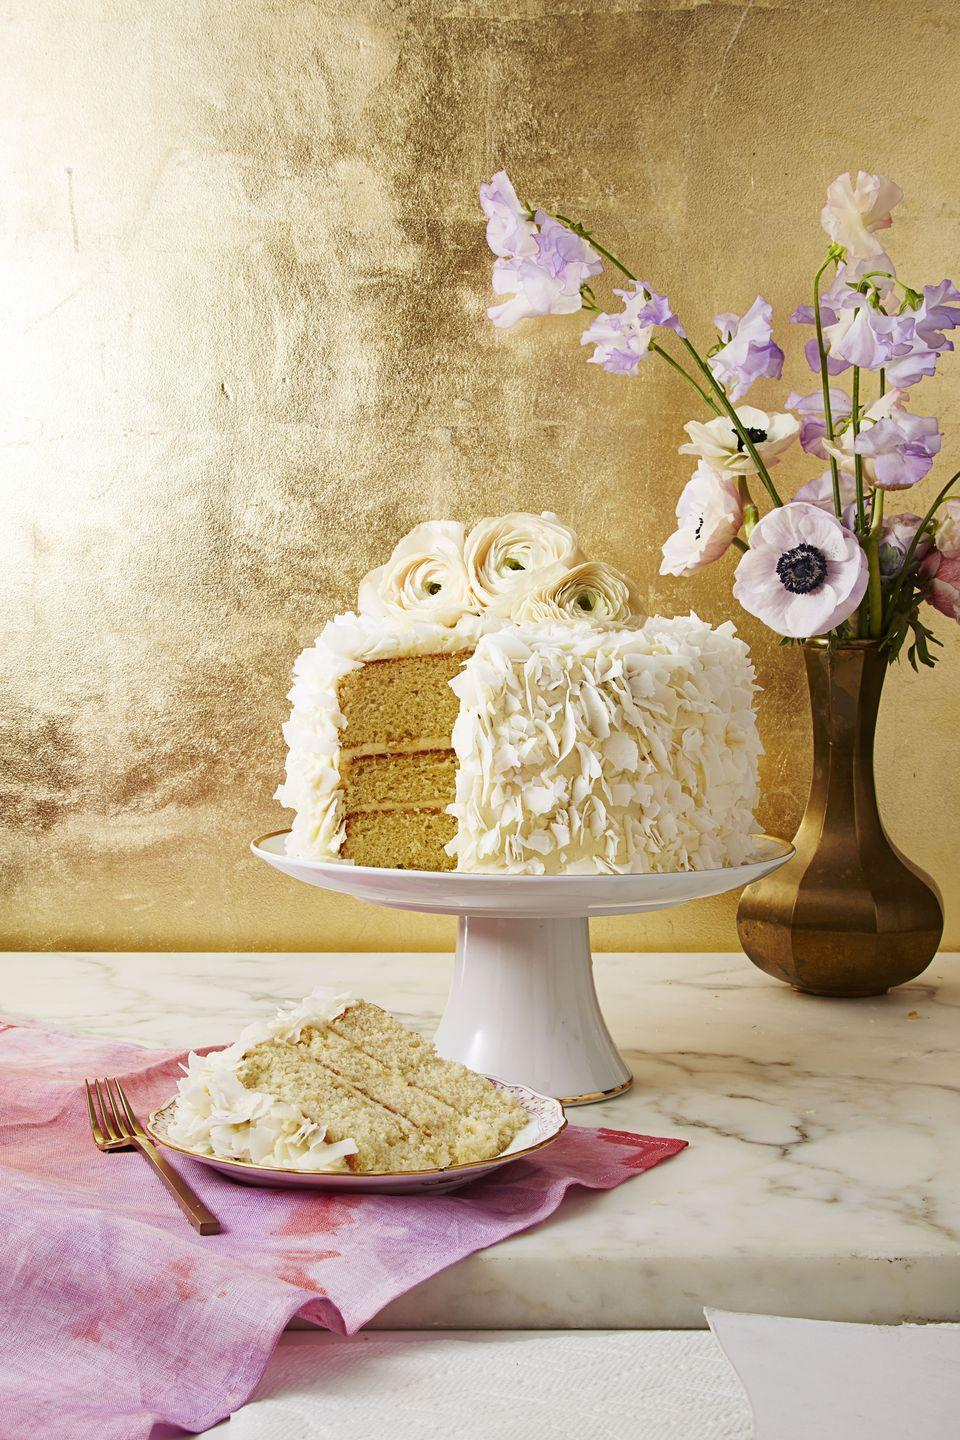 "<p>Show off your baking skills — and your love for Mom — with this stunning cake. </p><p><em><a href=""https://www.goodhousekeeping.com/food-recipes/a37460/coconut-layer-cake-with-cream-cheese-frosting-recipe/"" rel=""nofollow noopener"" target=""_blank"" data-ylk=""slk:Get the recipe for Coconut Layer Cake With Cream Cheese Frosting »"" class=""link rapid-noclick-resp"">Get the recipe for Coconut Layer Cake With Cream Cheese Frosting »</a></em> <br></p>"